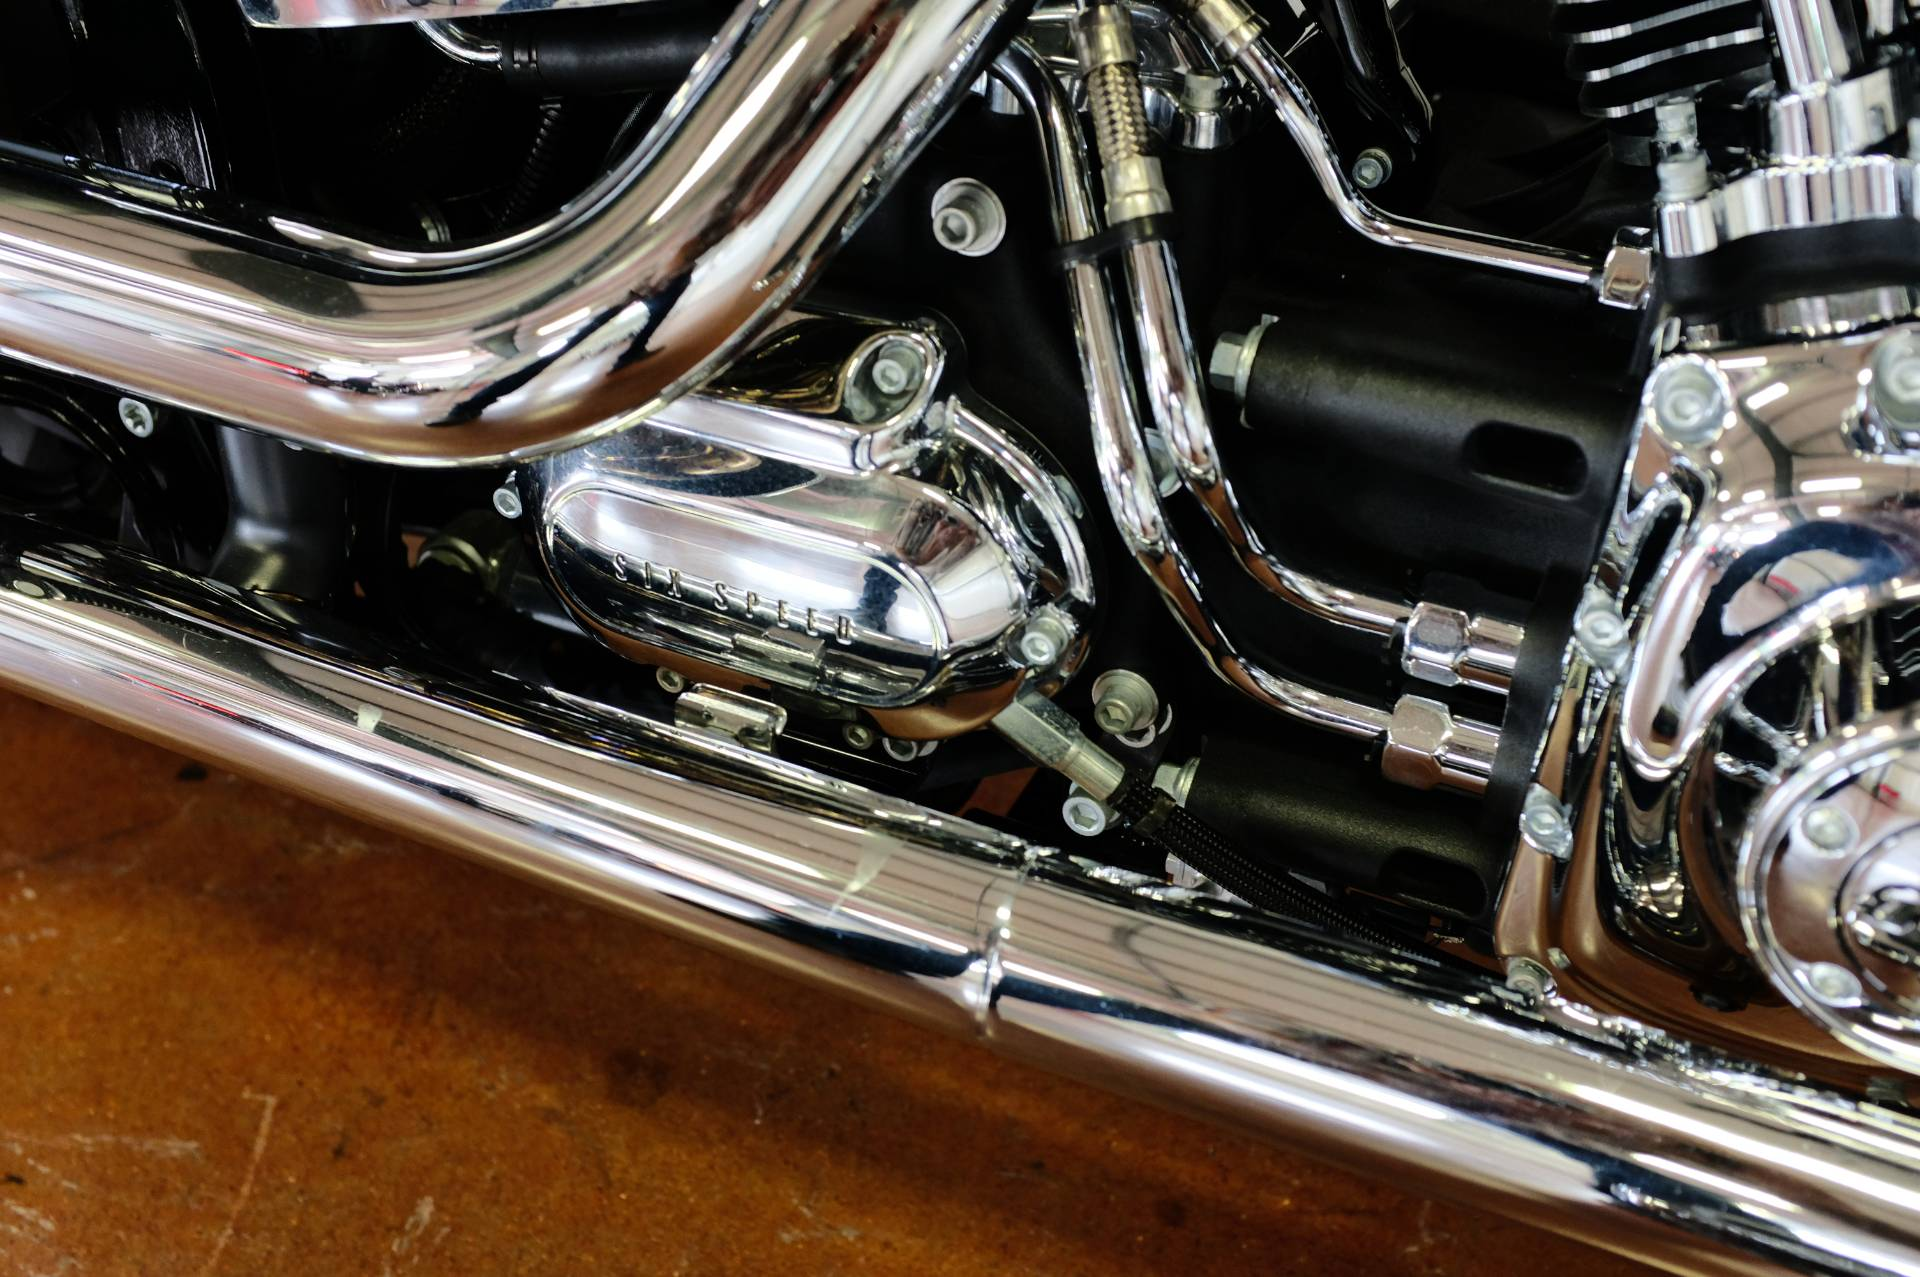 2015 Harley-Davidson Softail® Deluxe in Sunbury, Ohio - Photo 10